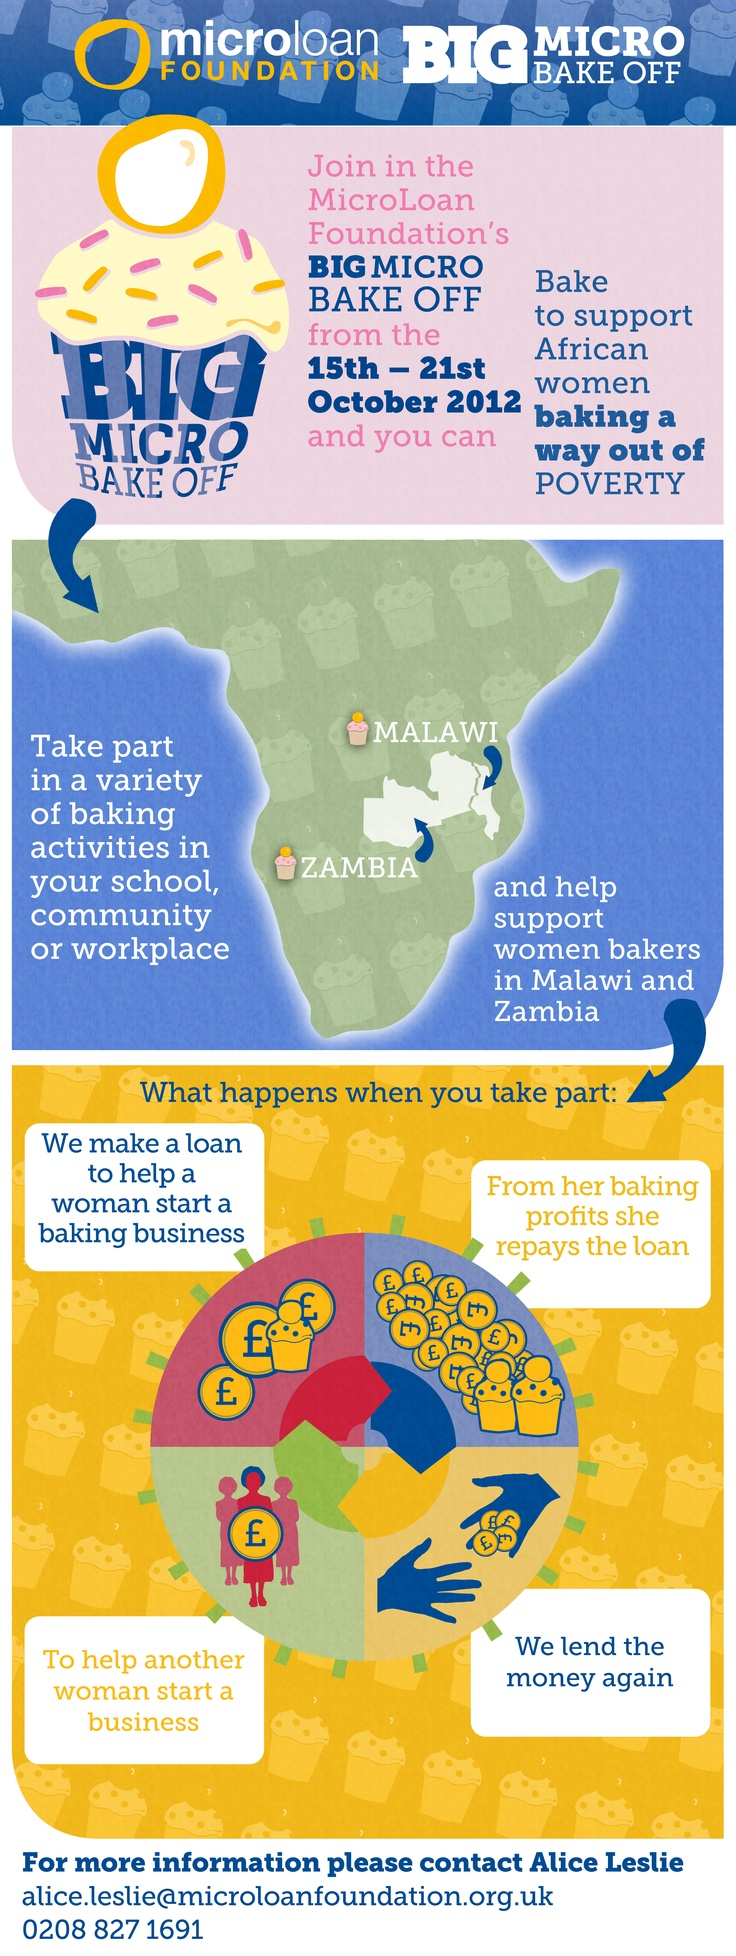 Join MicroLoan Foundation and bake to support African women baking a way out of poverty